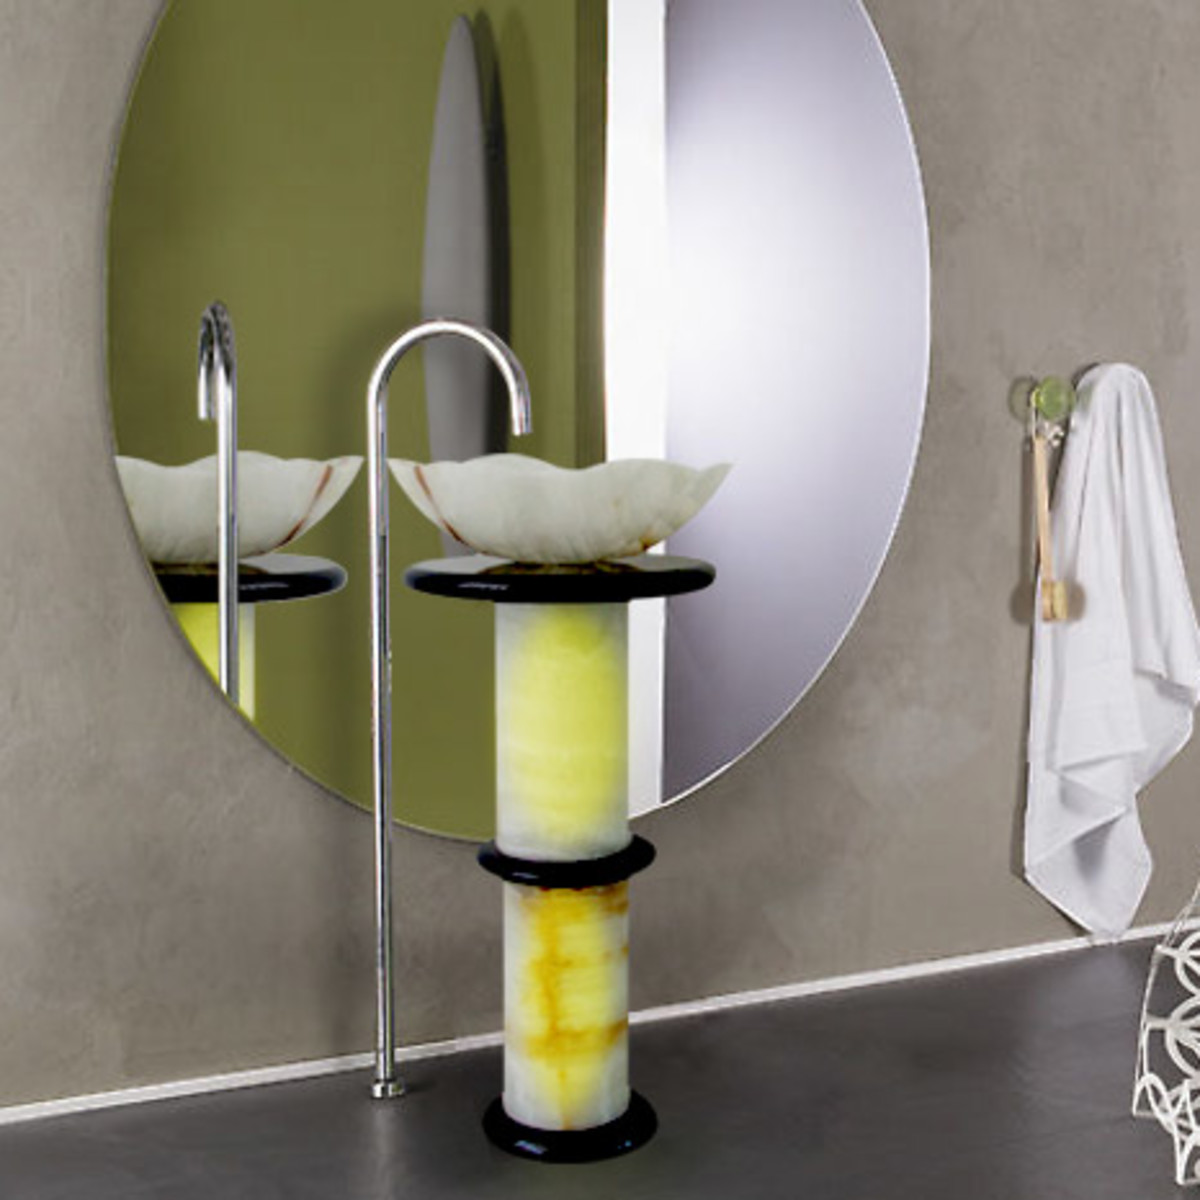 How to maximize space in a small bathroom hubpages - Maximizing space in a small bathroom collection ...